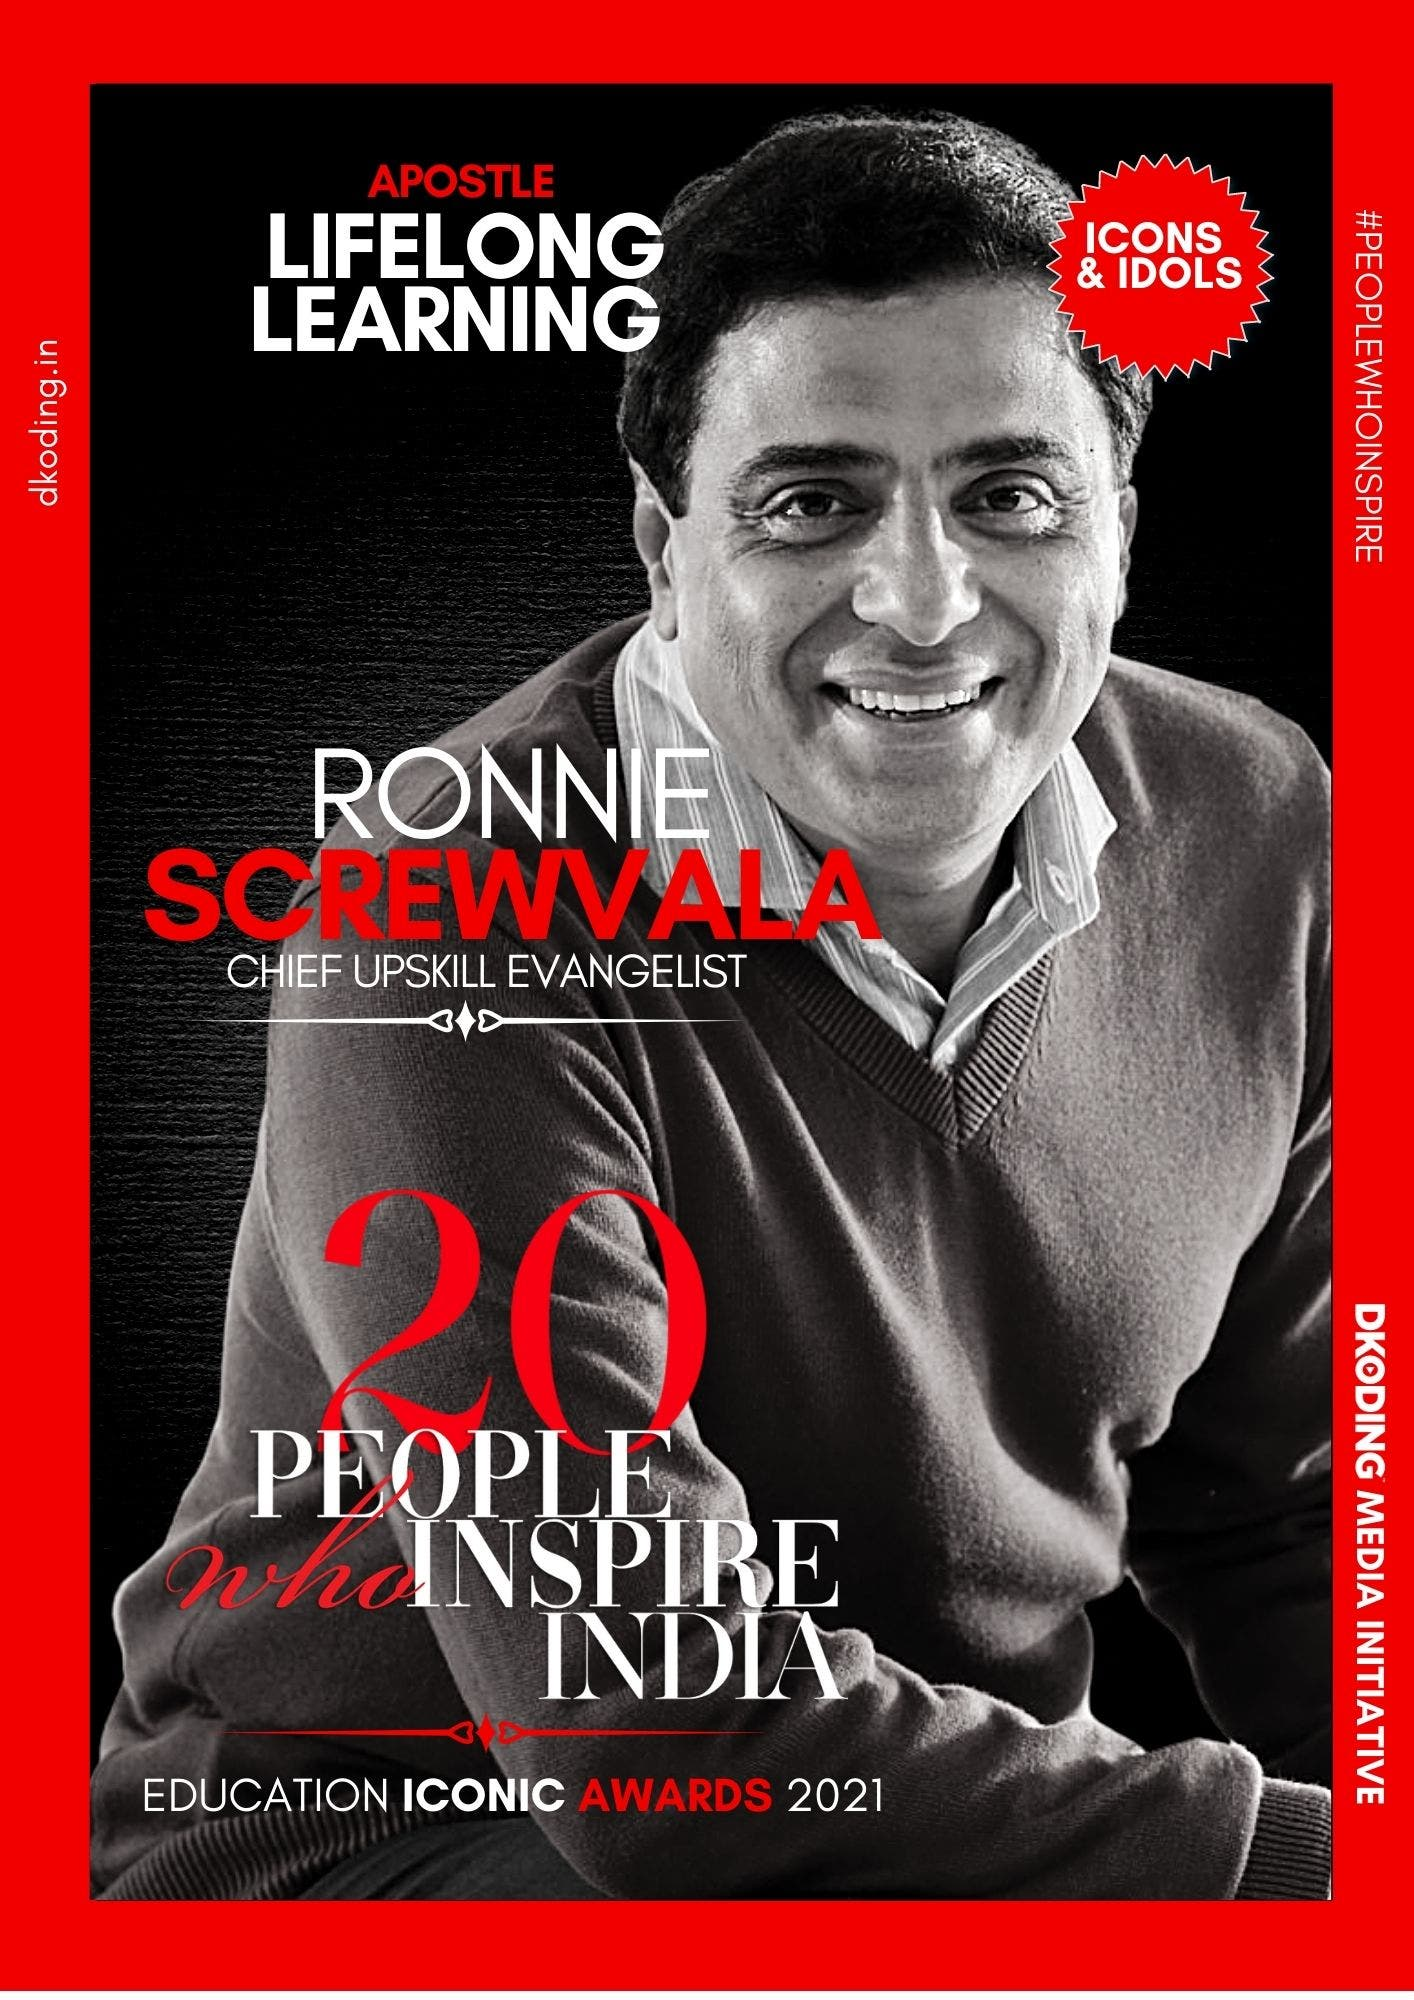 Ronnie Screwvala wins People Who Inspire India PWI Education Iconic Award 2021